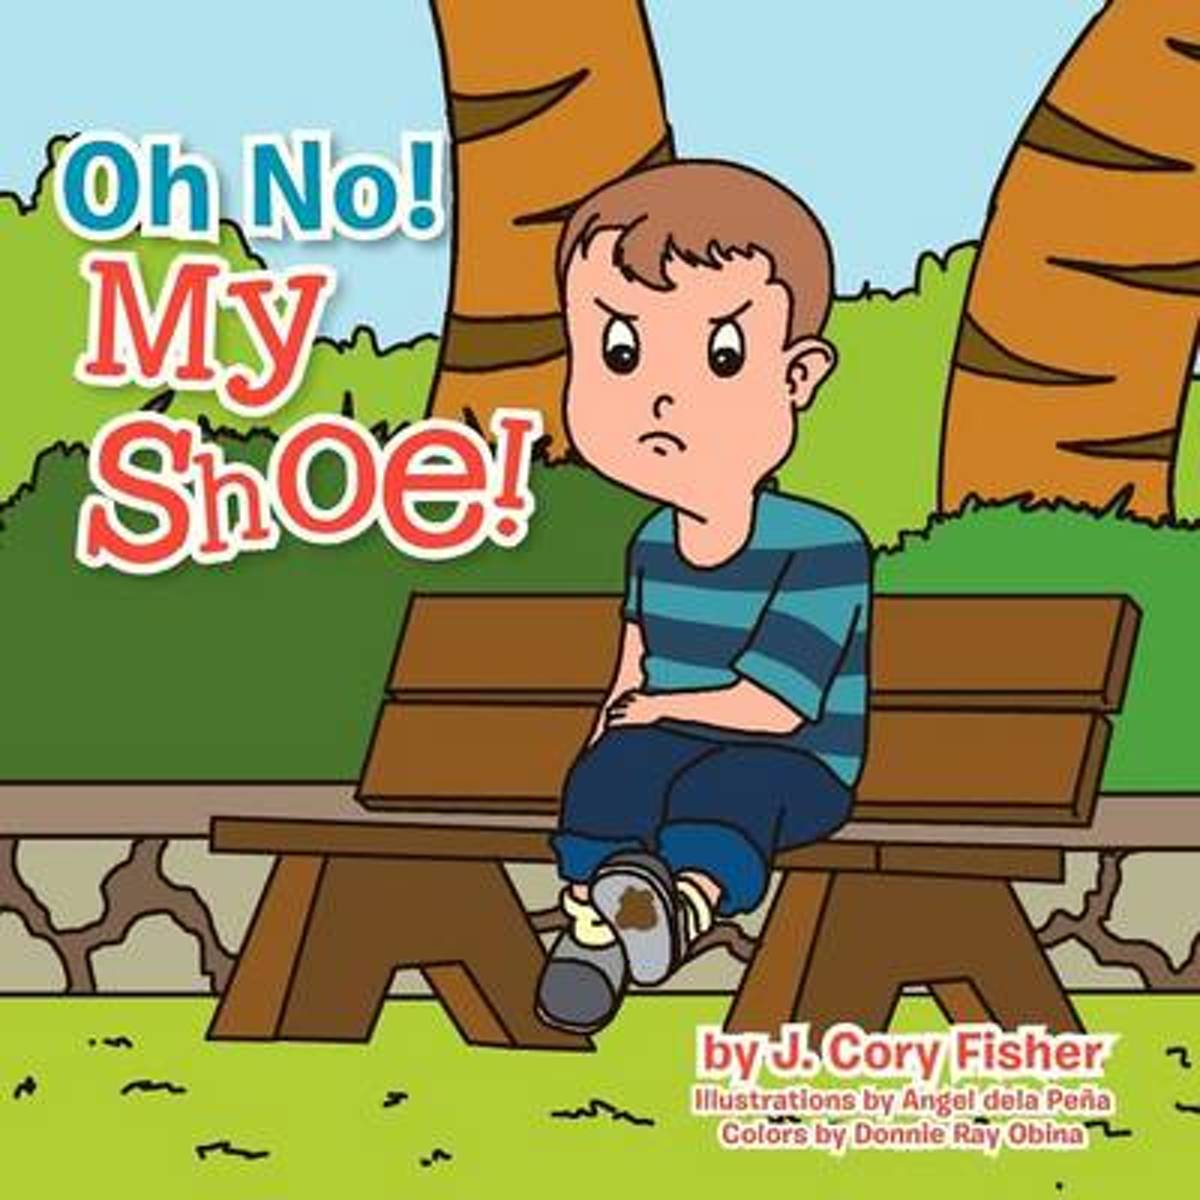 Oh No! My Shoe!